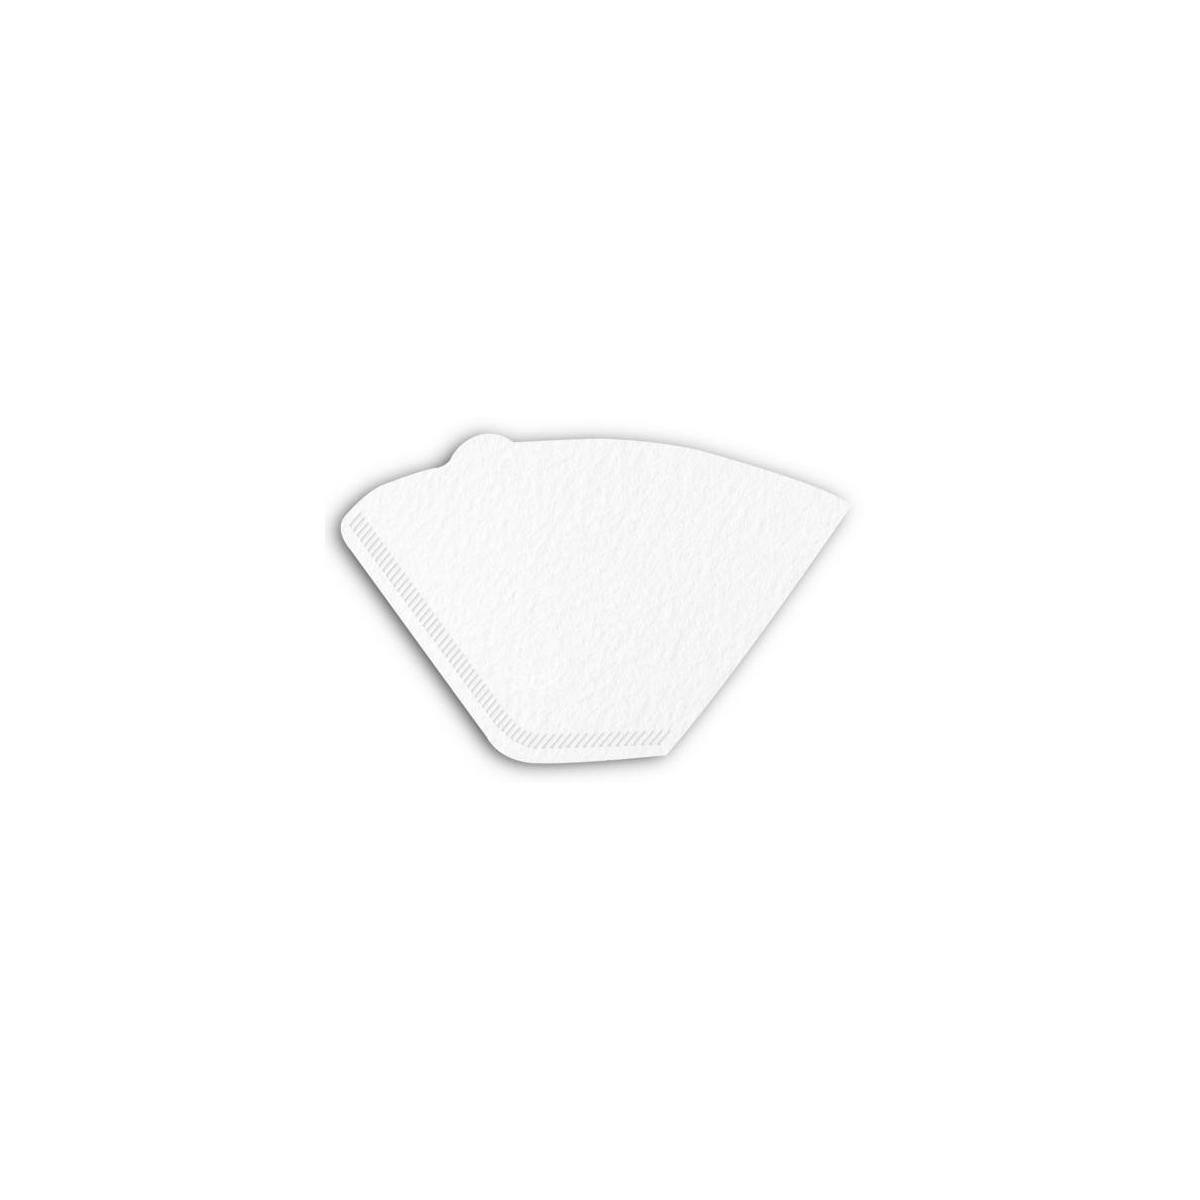 Cone #4 Coffee Filters (For 8-10 cup non-electric drippers or 8-12 cup electric coffeemakers)